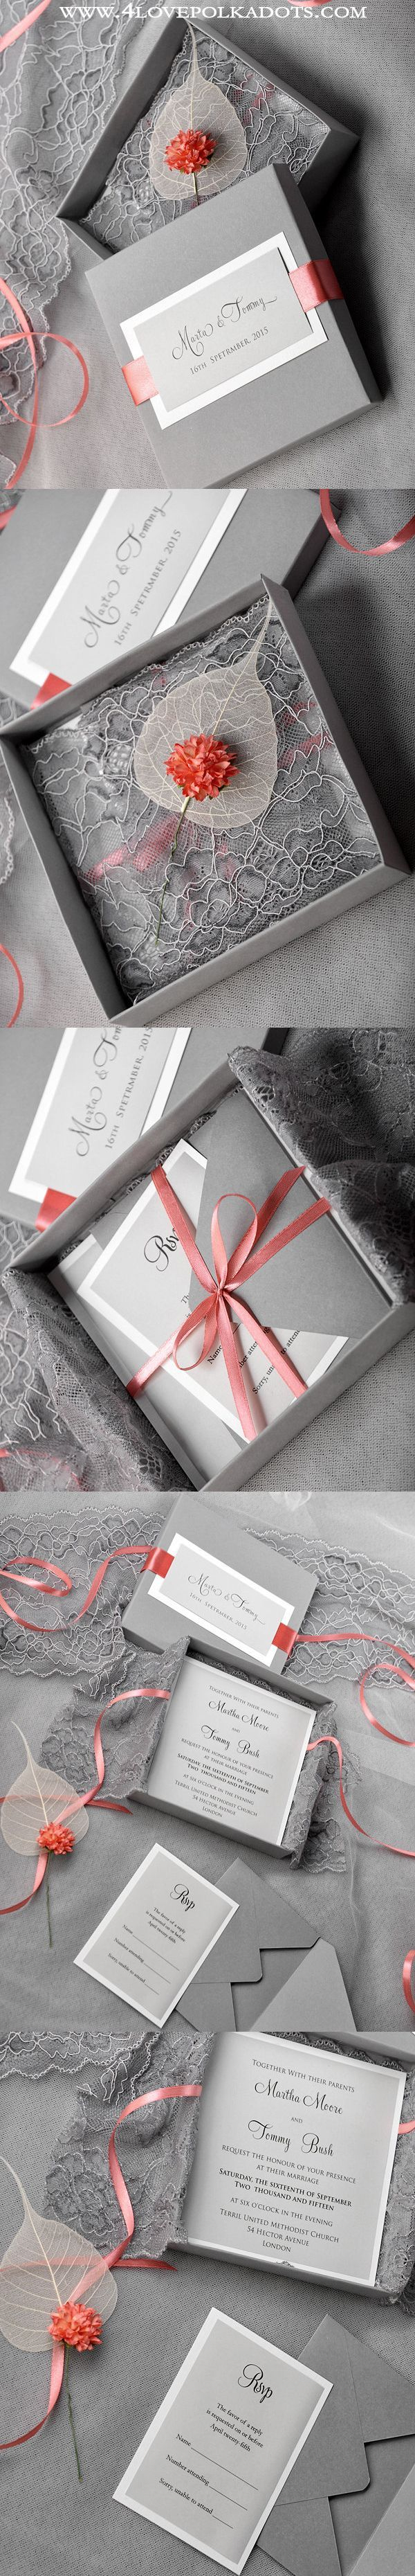 box wedding invitations online%0A Wedding Invitation in a box Grey  u     Lace  weddingideas  vintagewedding   romanticwedding